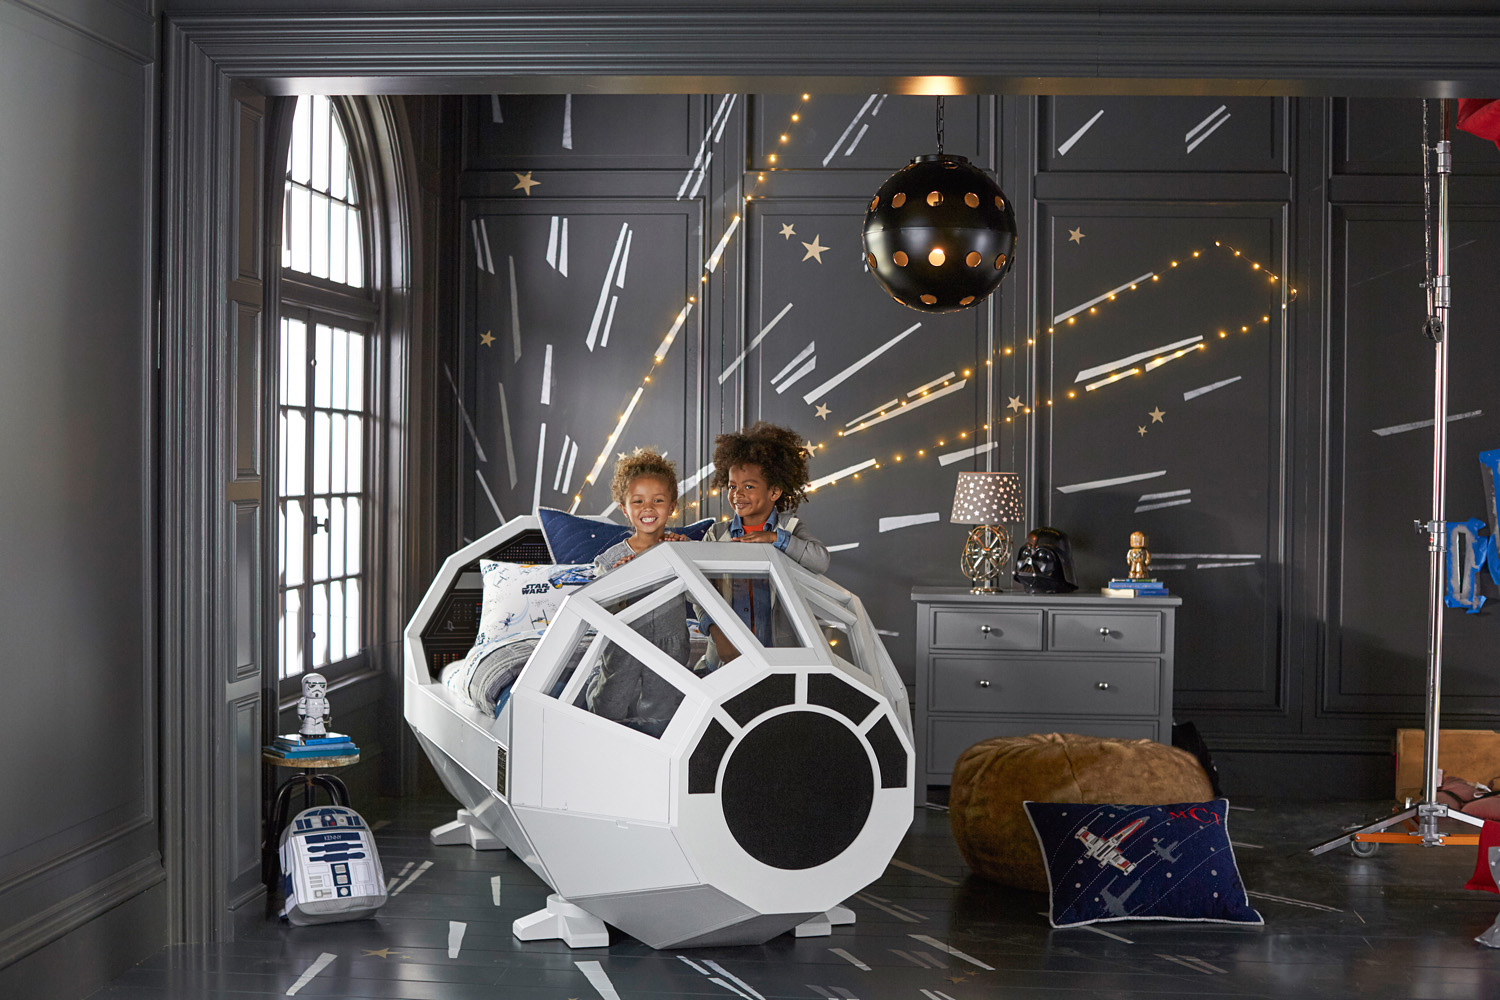 star wars home decor Pottery Barn Star Wars Collection   Preview! | StarWars.com star wars home decor